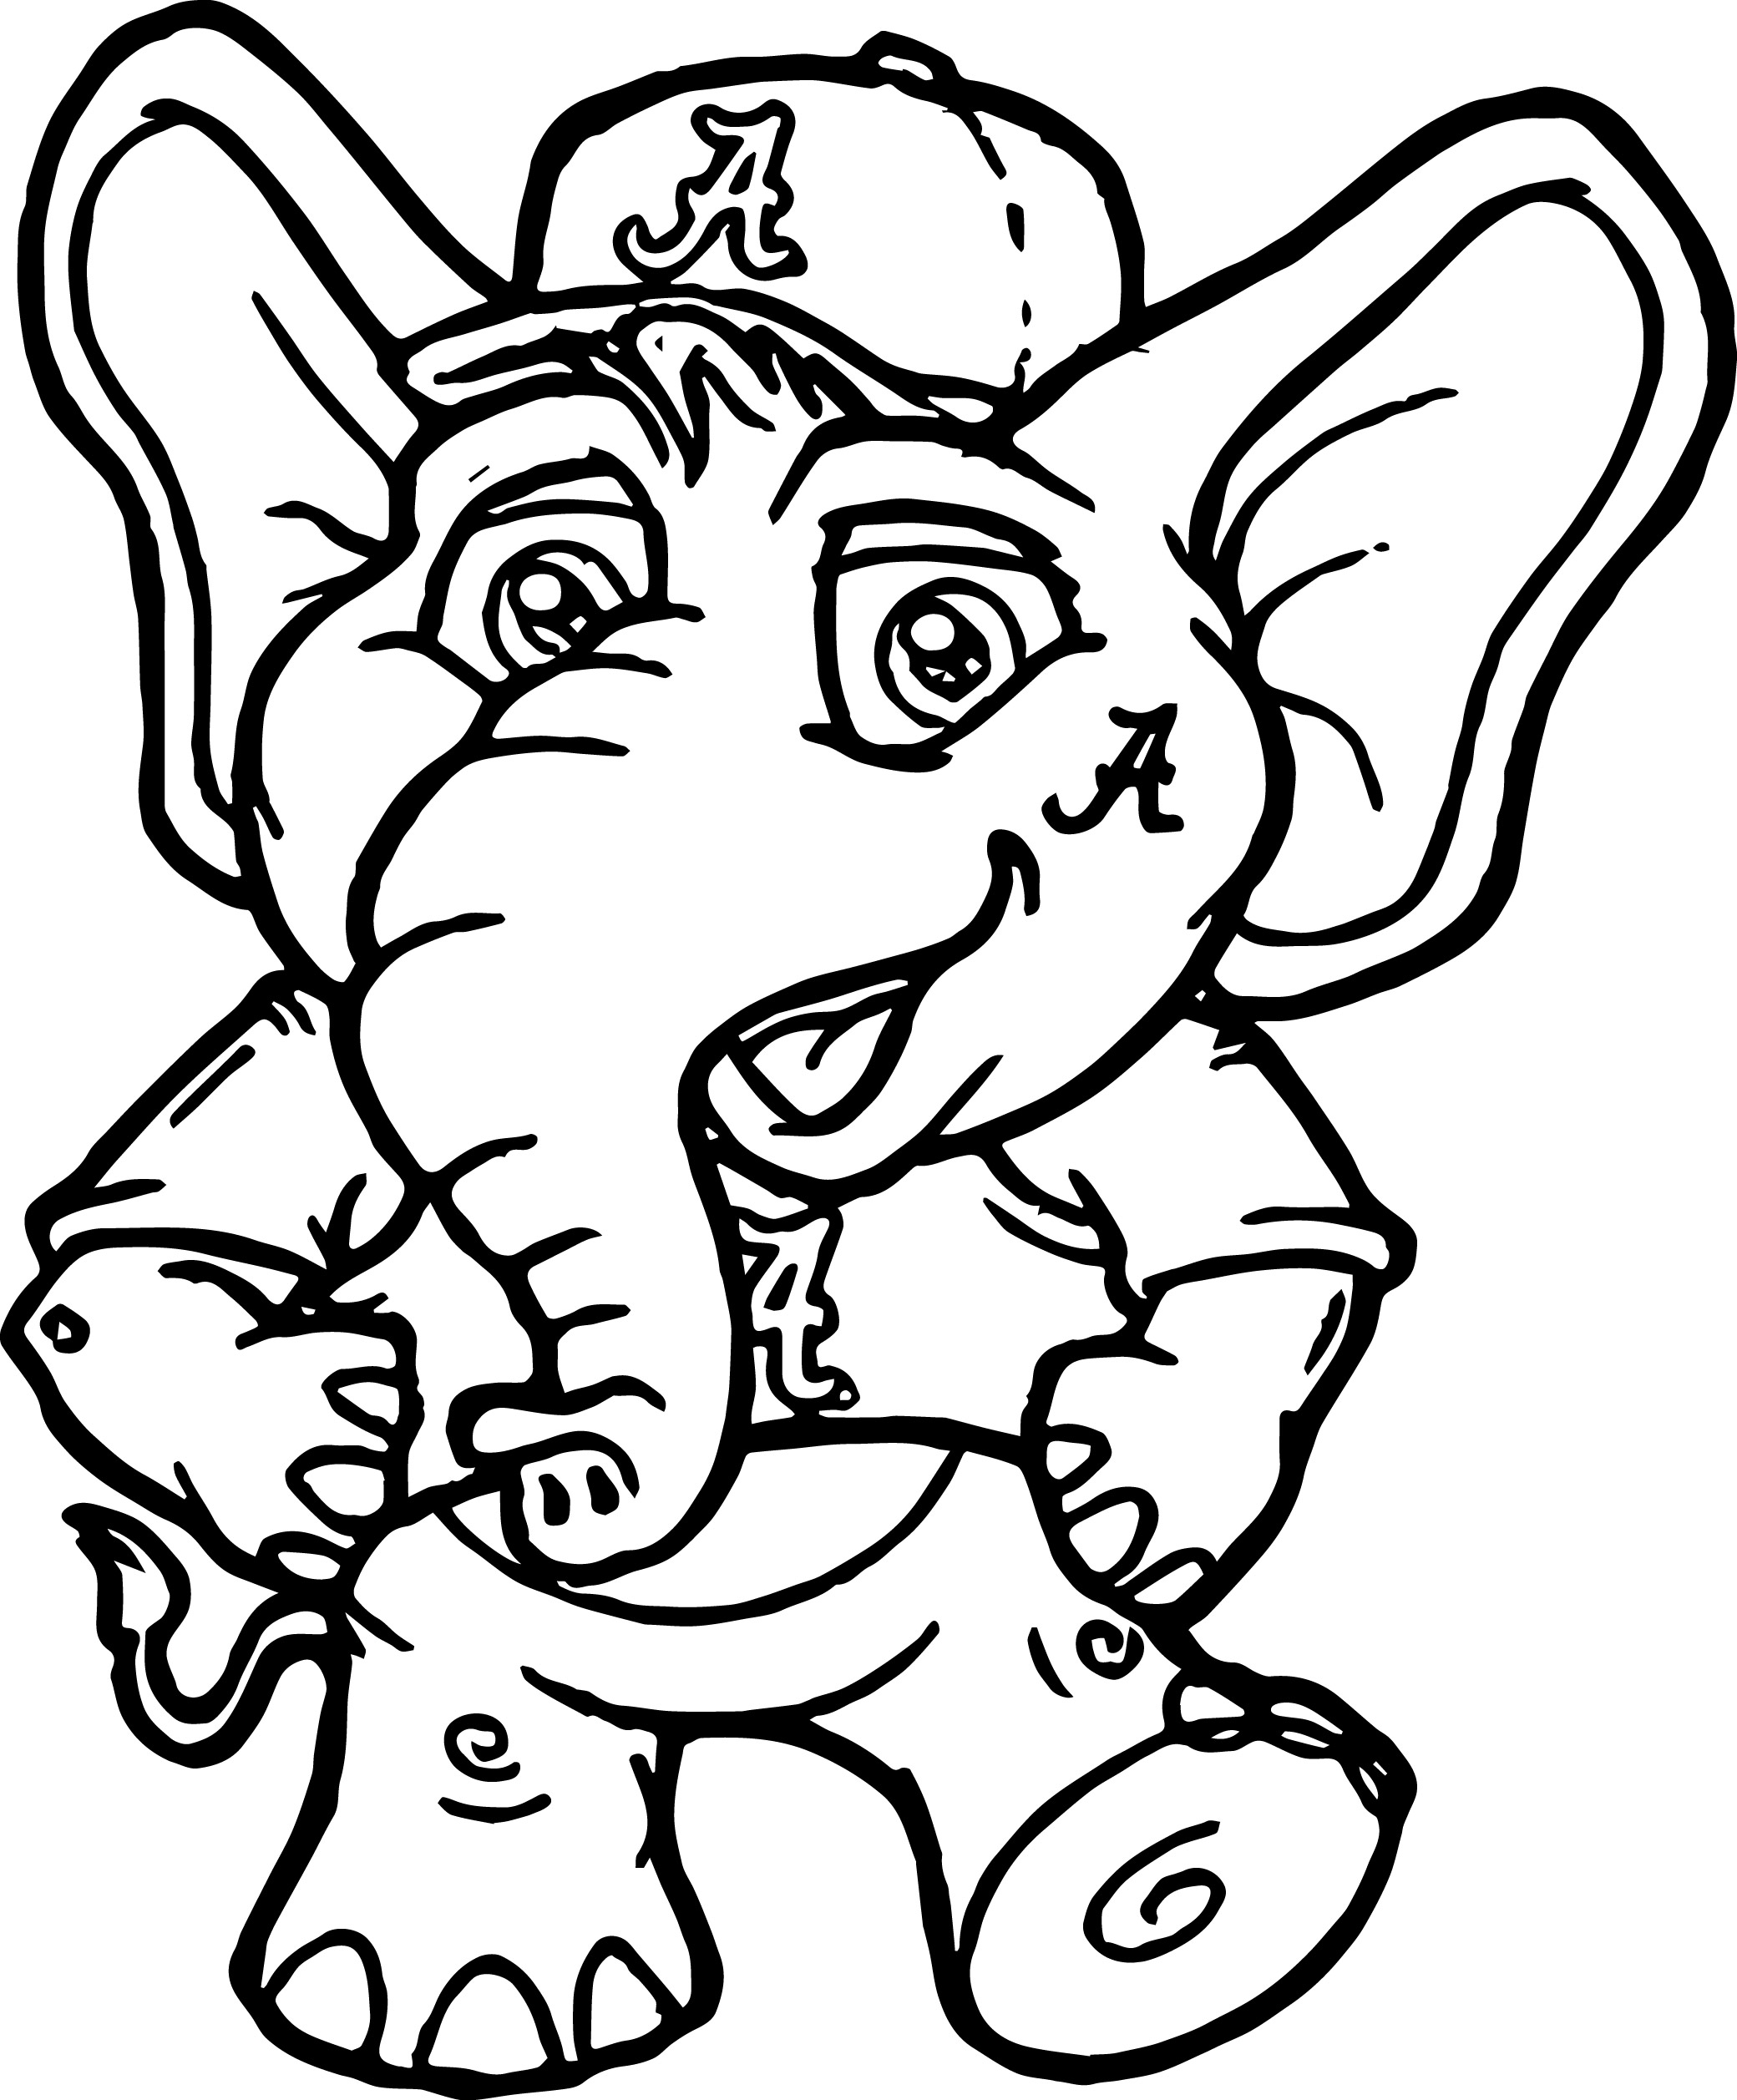 2080x2515 Alabama Football Coloring Pages Coloring Pages